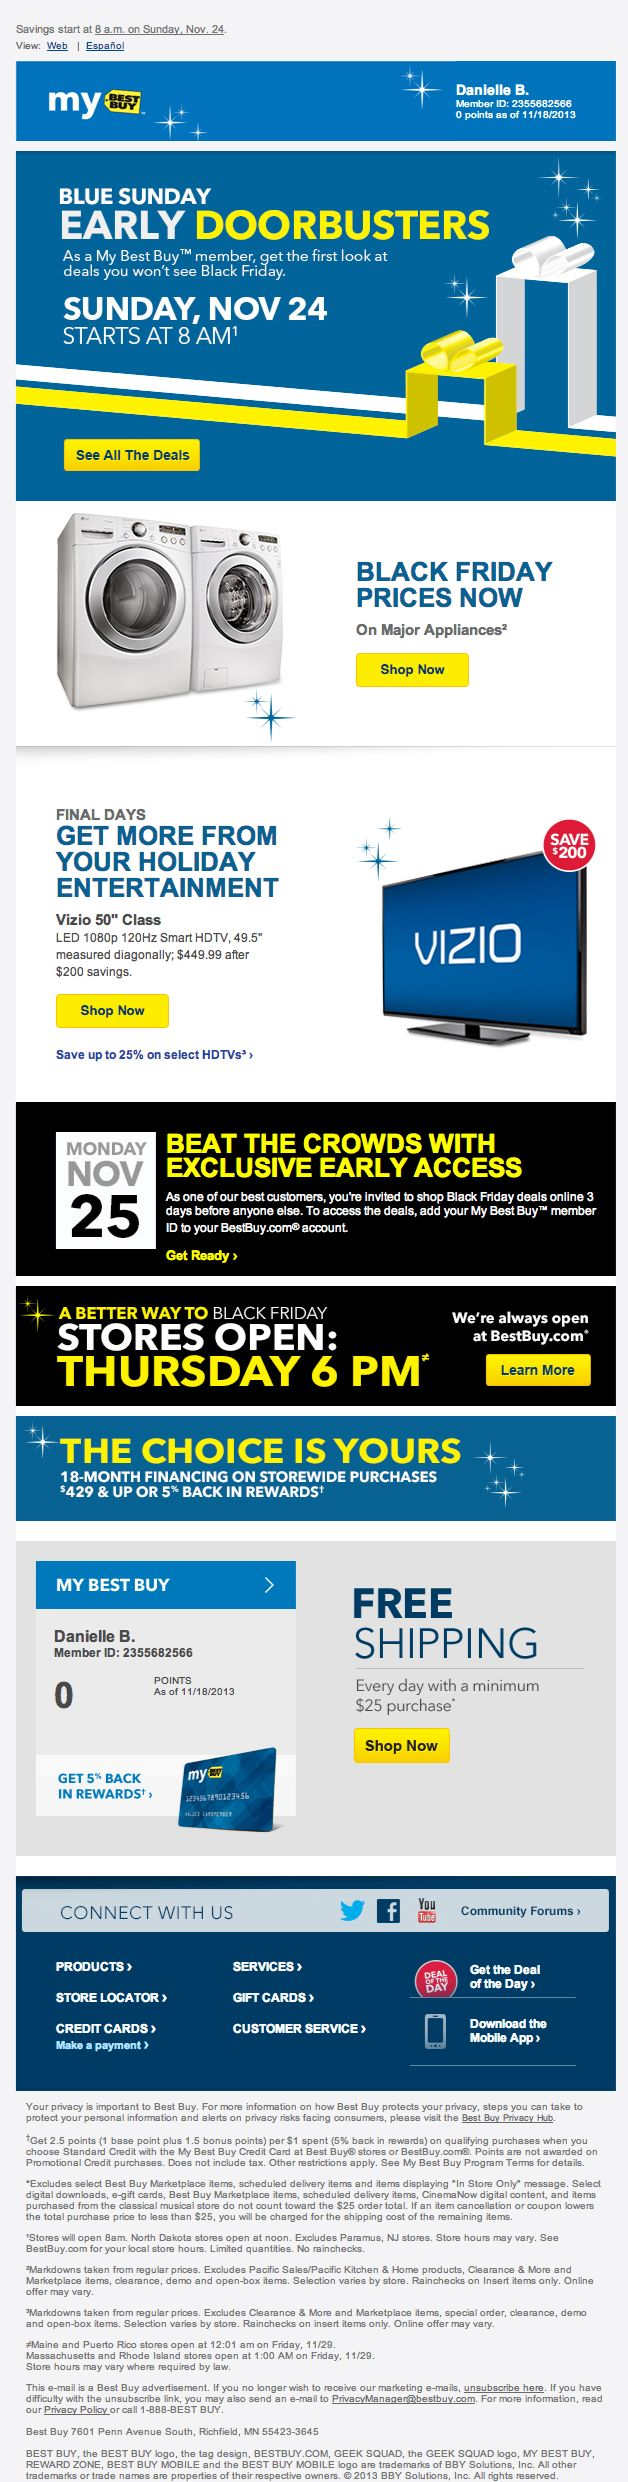 Best Buy Holiday Email 2013 Pre Black Friday Black Friday Email Cyber Monday Email Black Friday